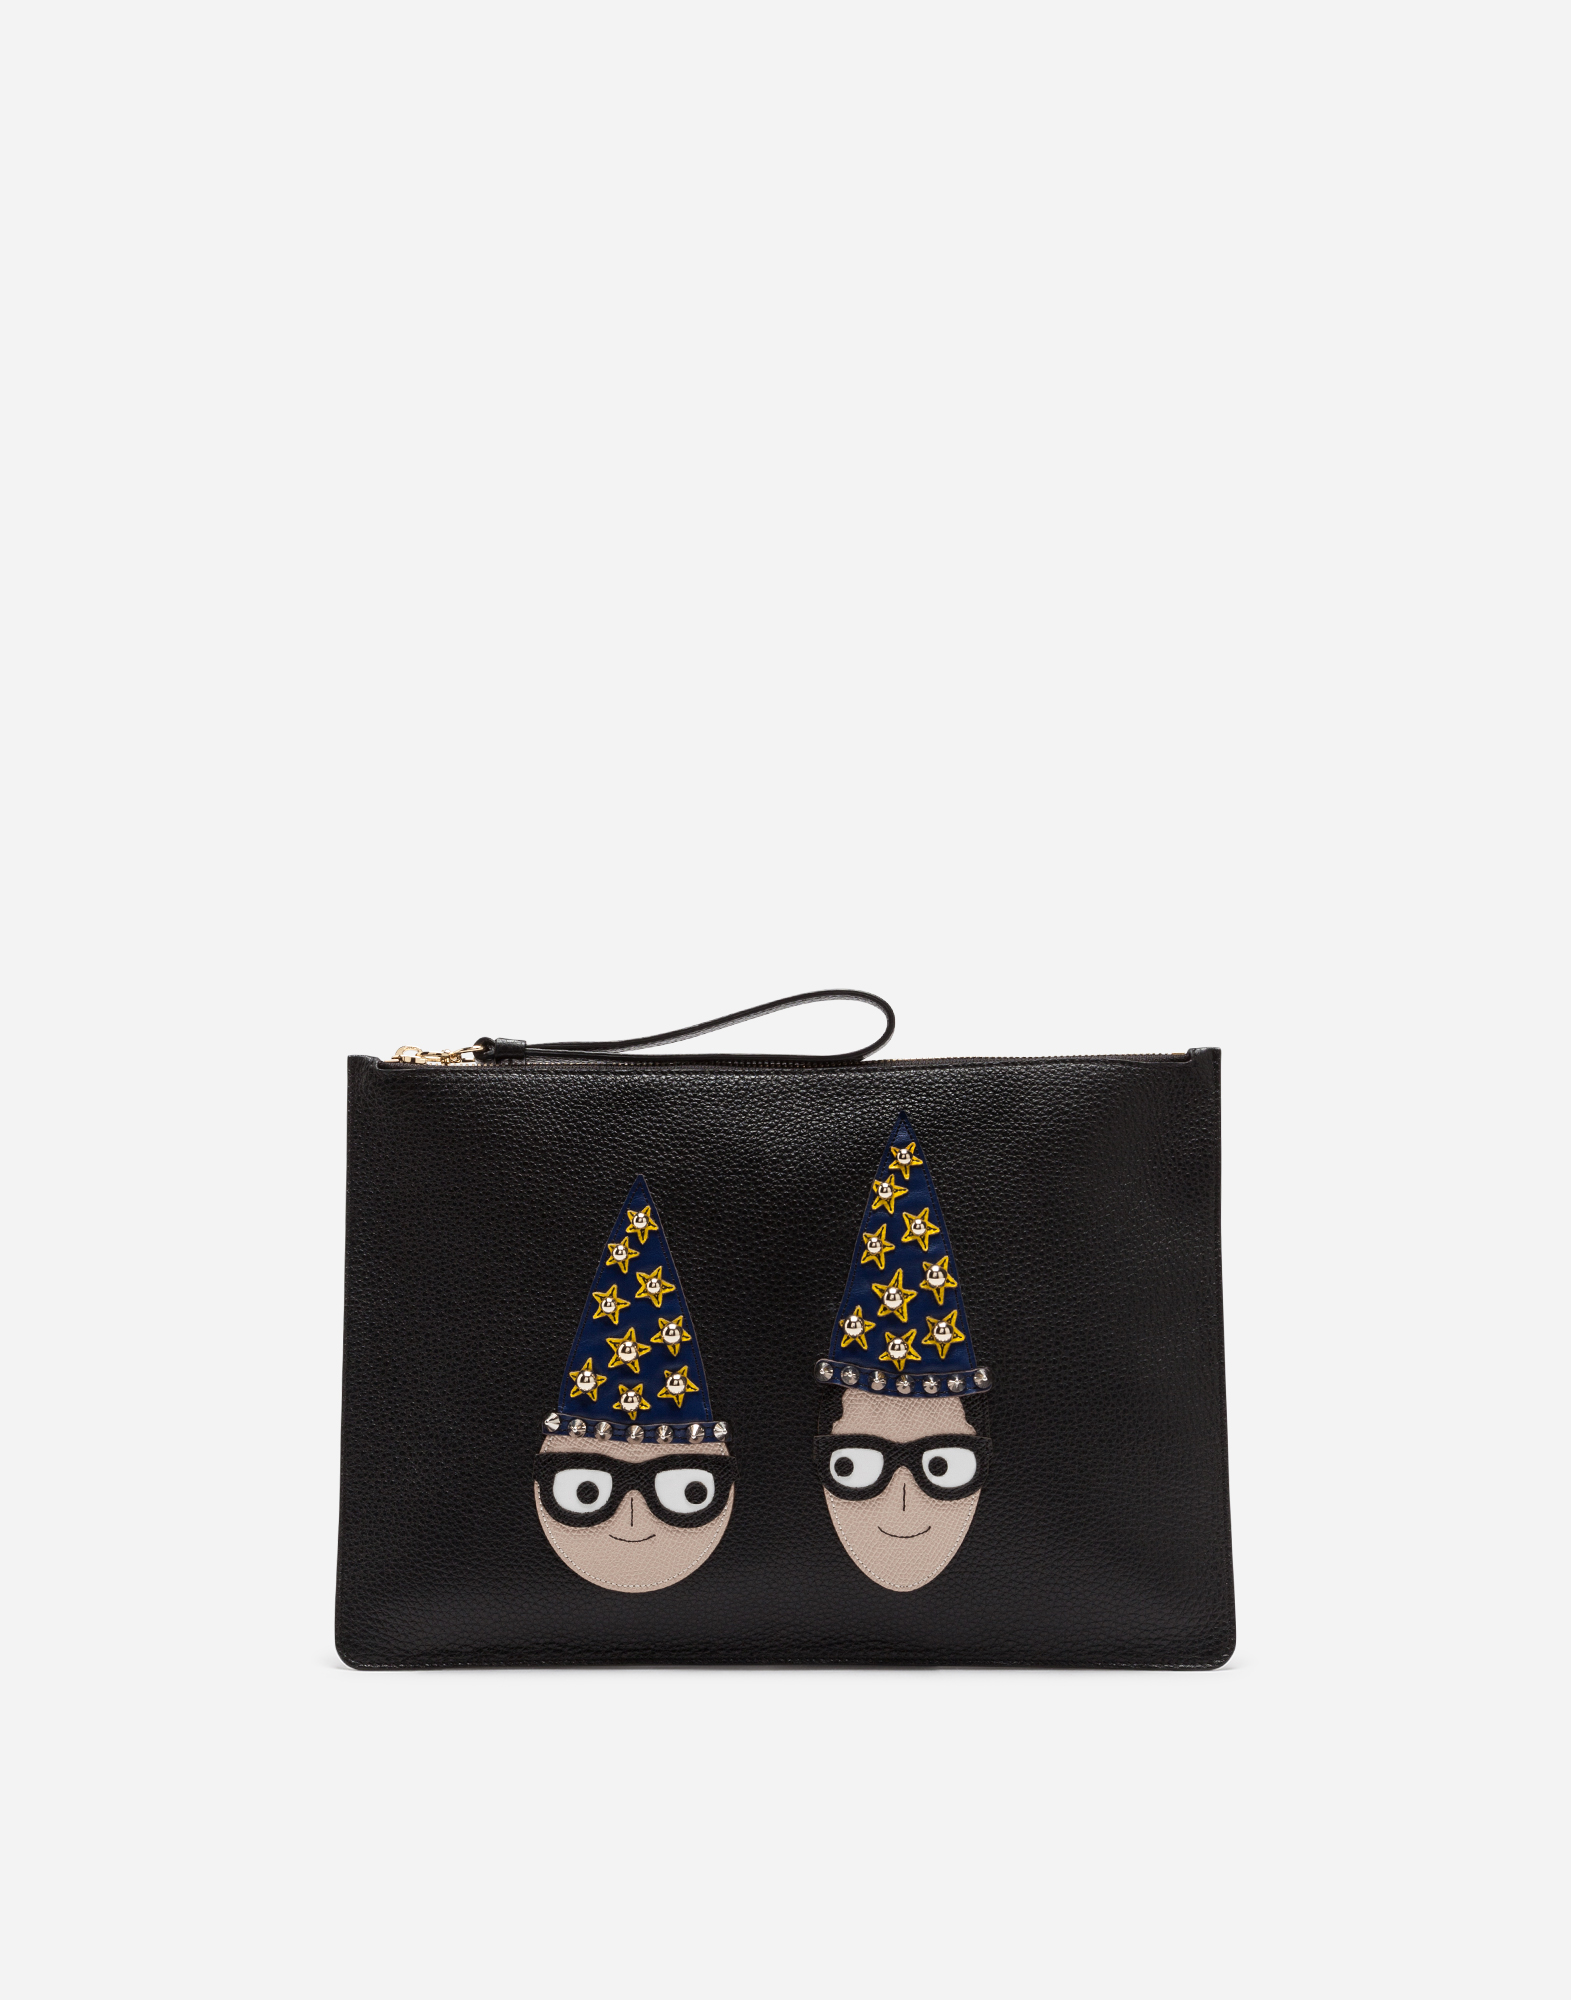 Dolce&Gabbana DAUPHINE CALFSKIN CLUTCH WITH PATCHES OF THE DESIGNERS